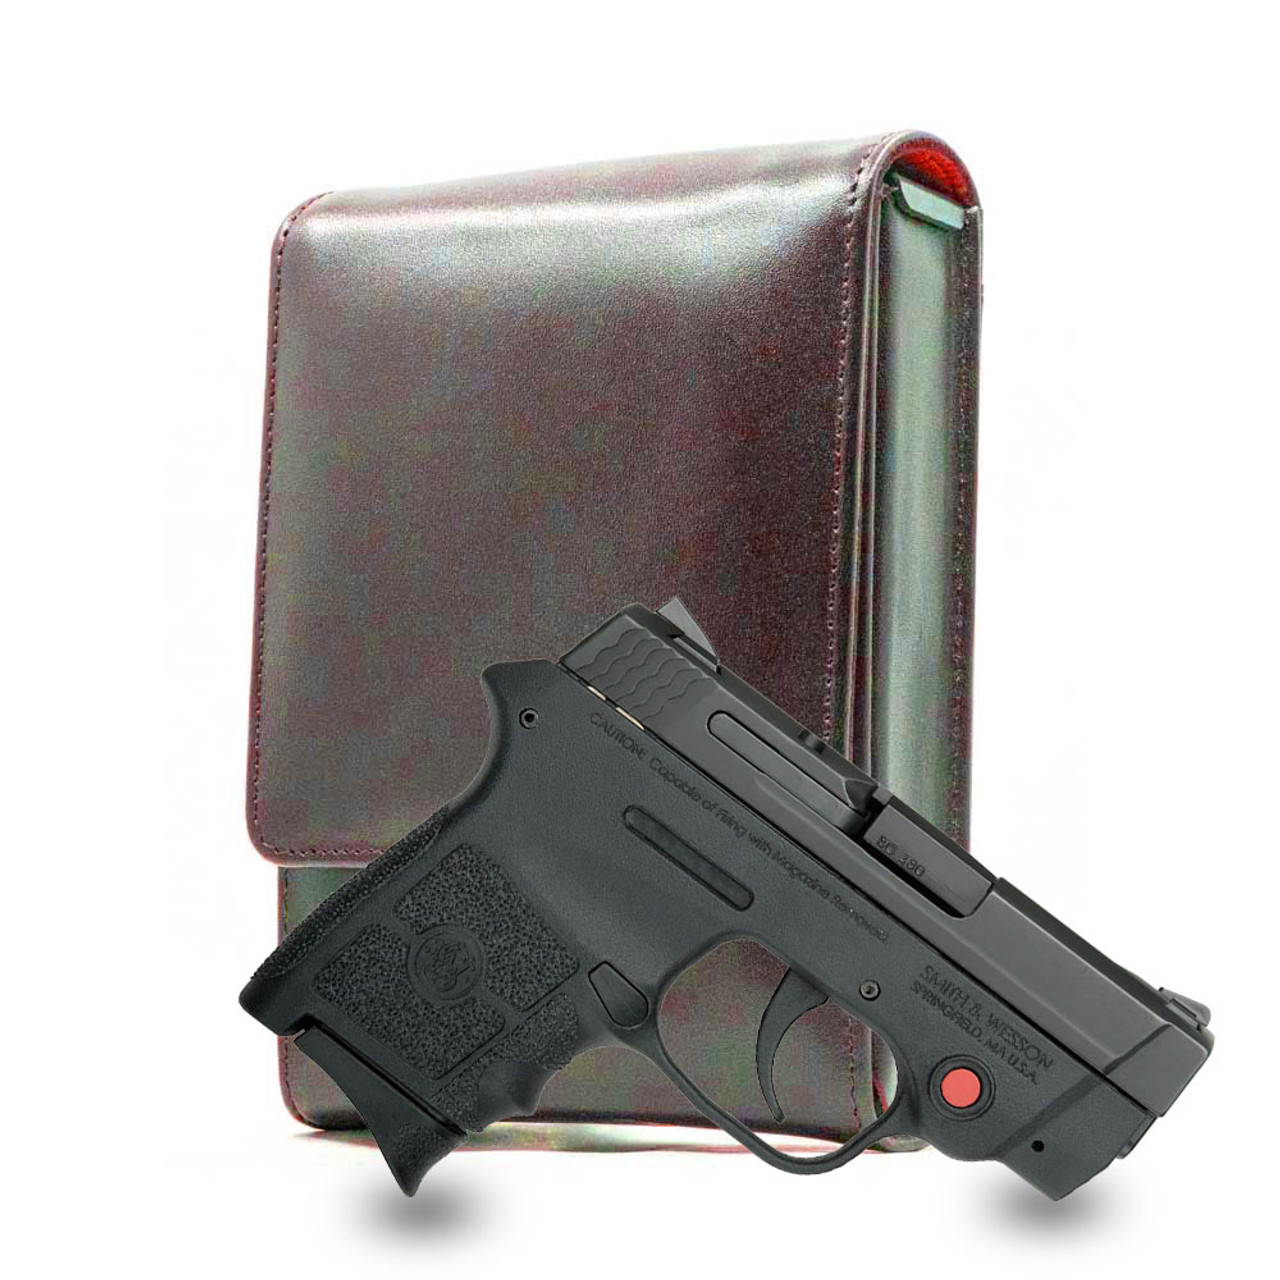 S&W Bodyguard 380 Brown Leather Series Holster